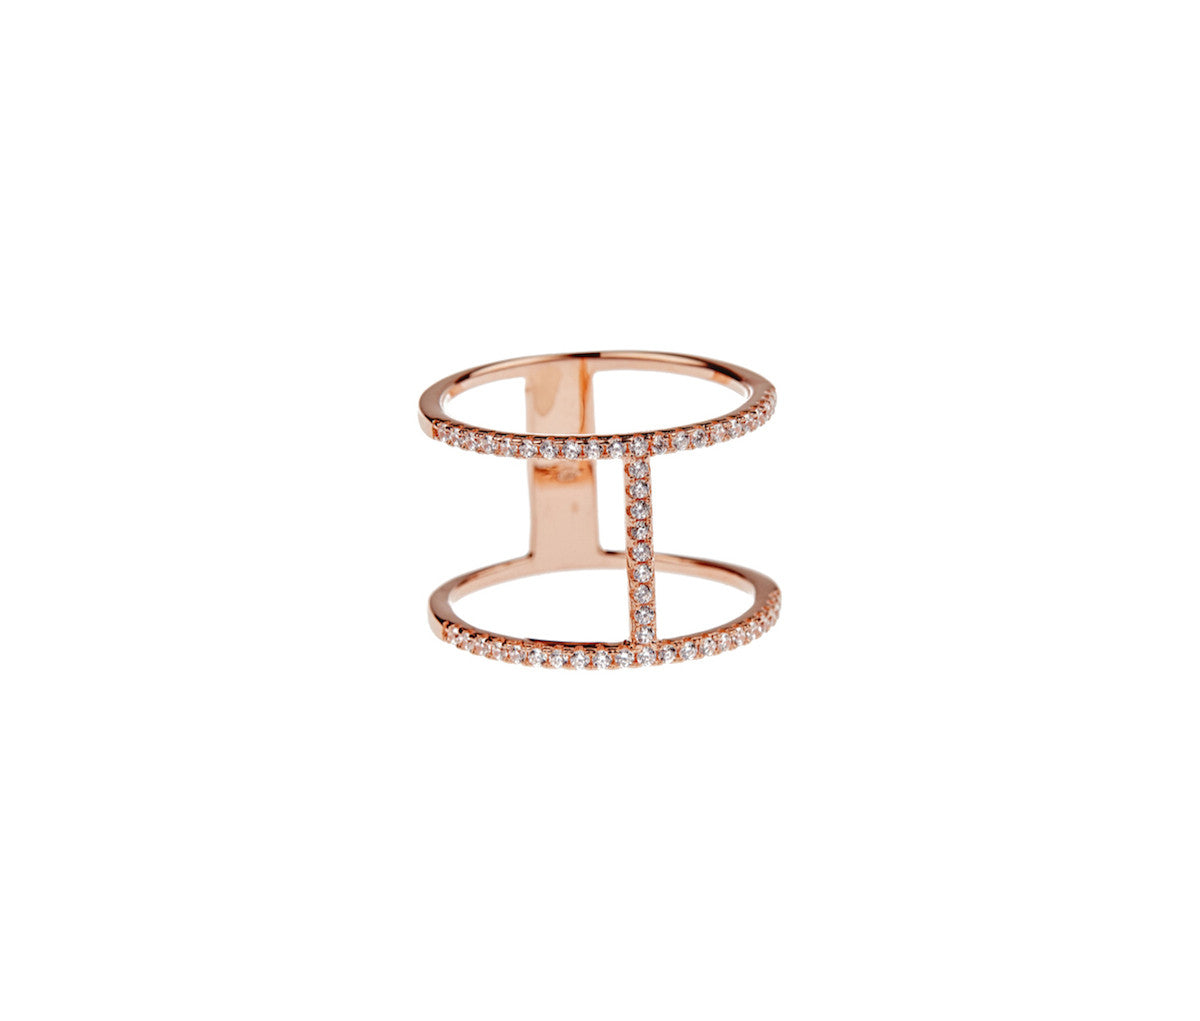 Silver in 1 micron Rose Gold H-Shaped Dual Band Ring